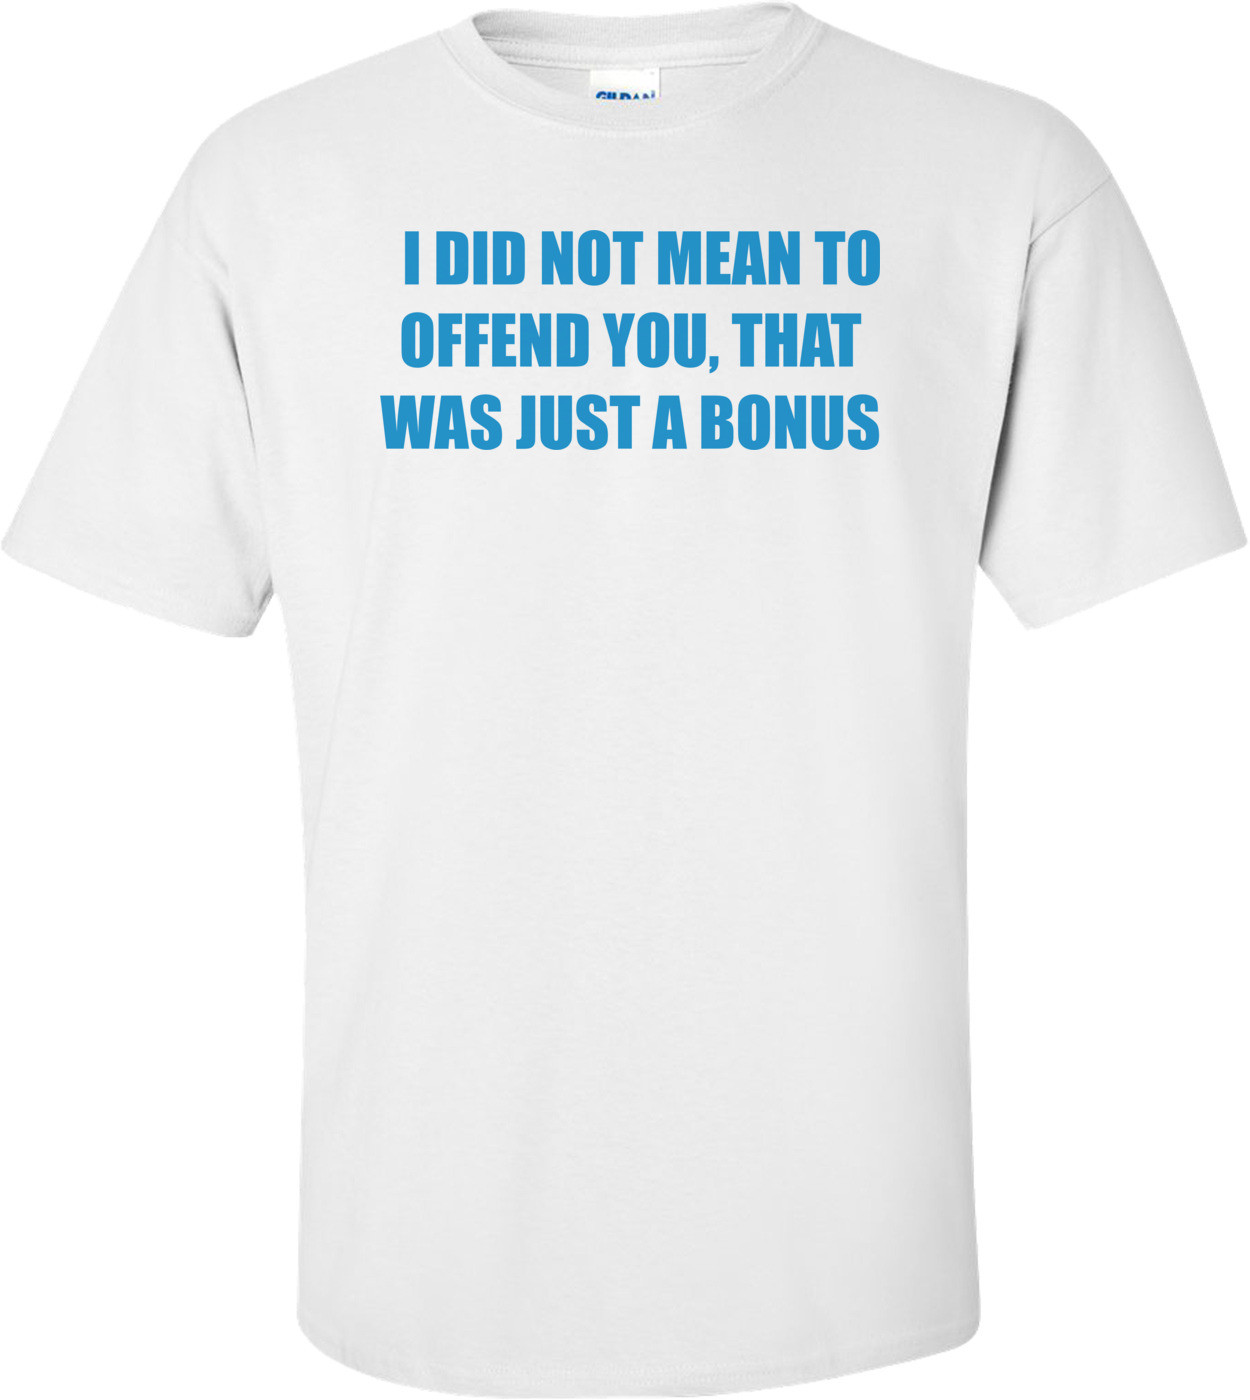 I DID NOT MEAN TO OFFEND YOU, THAT WAS JUST A BONUS Shirt